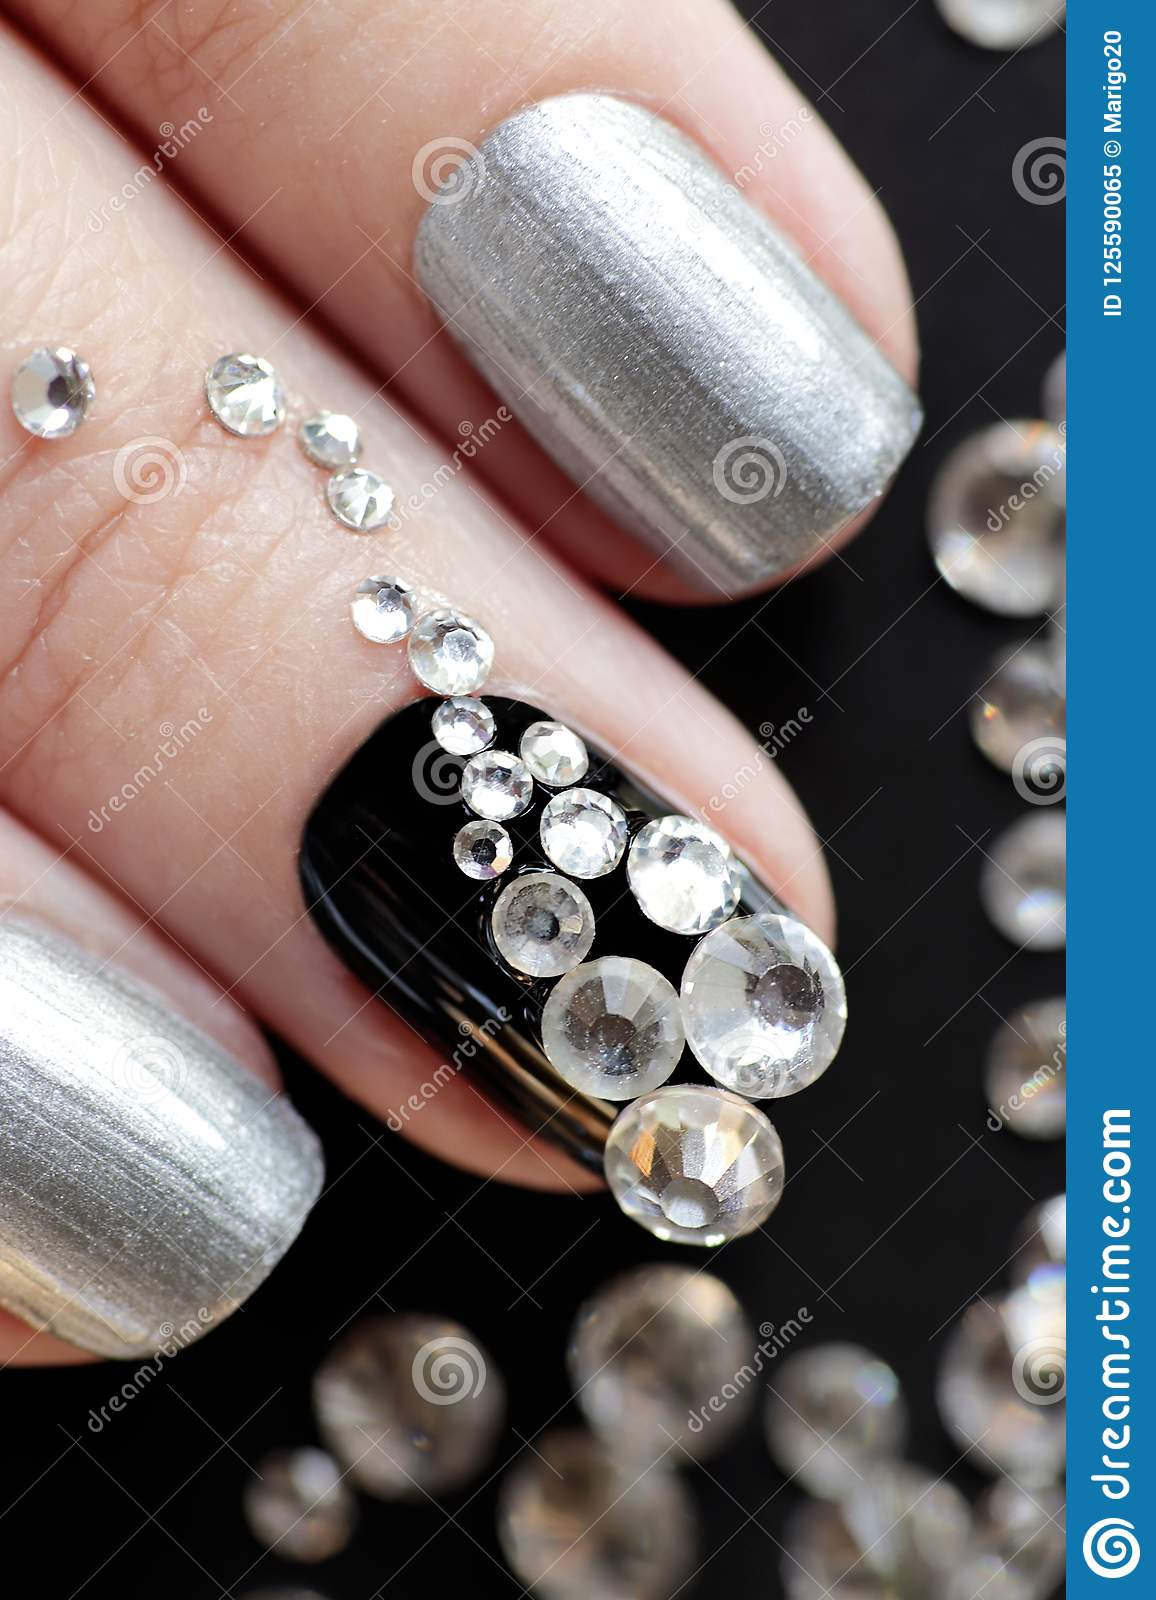 Black Silver Manicure On Short Nails With A Design Stock Image ...